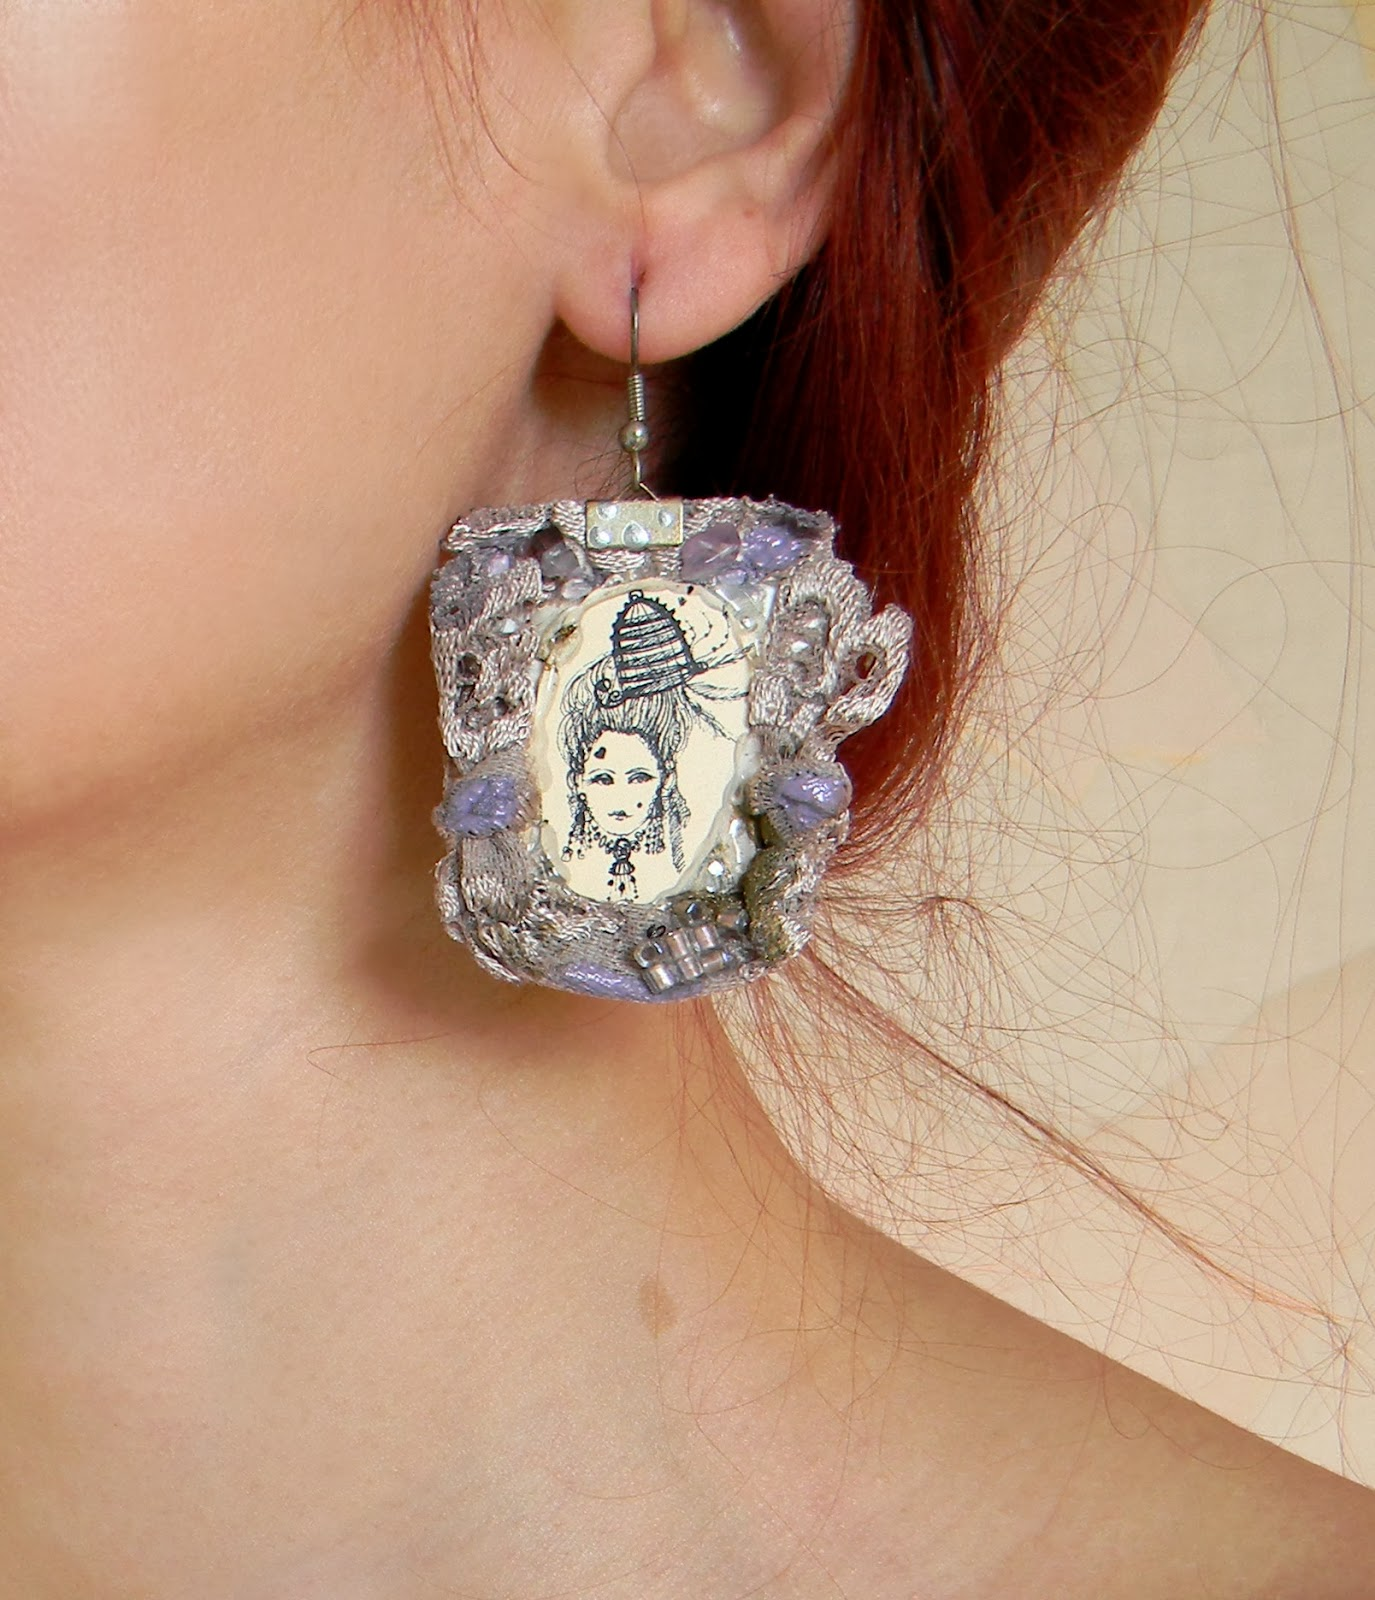 Lace Earrings Marie Antoinette Rococo Inspired in Lavander Lilac Shade